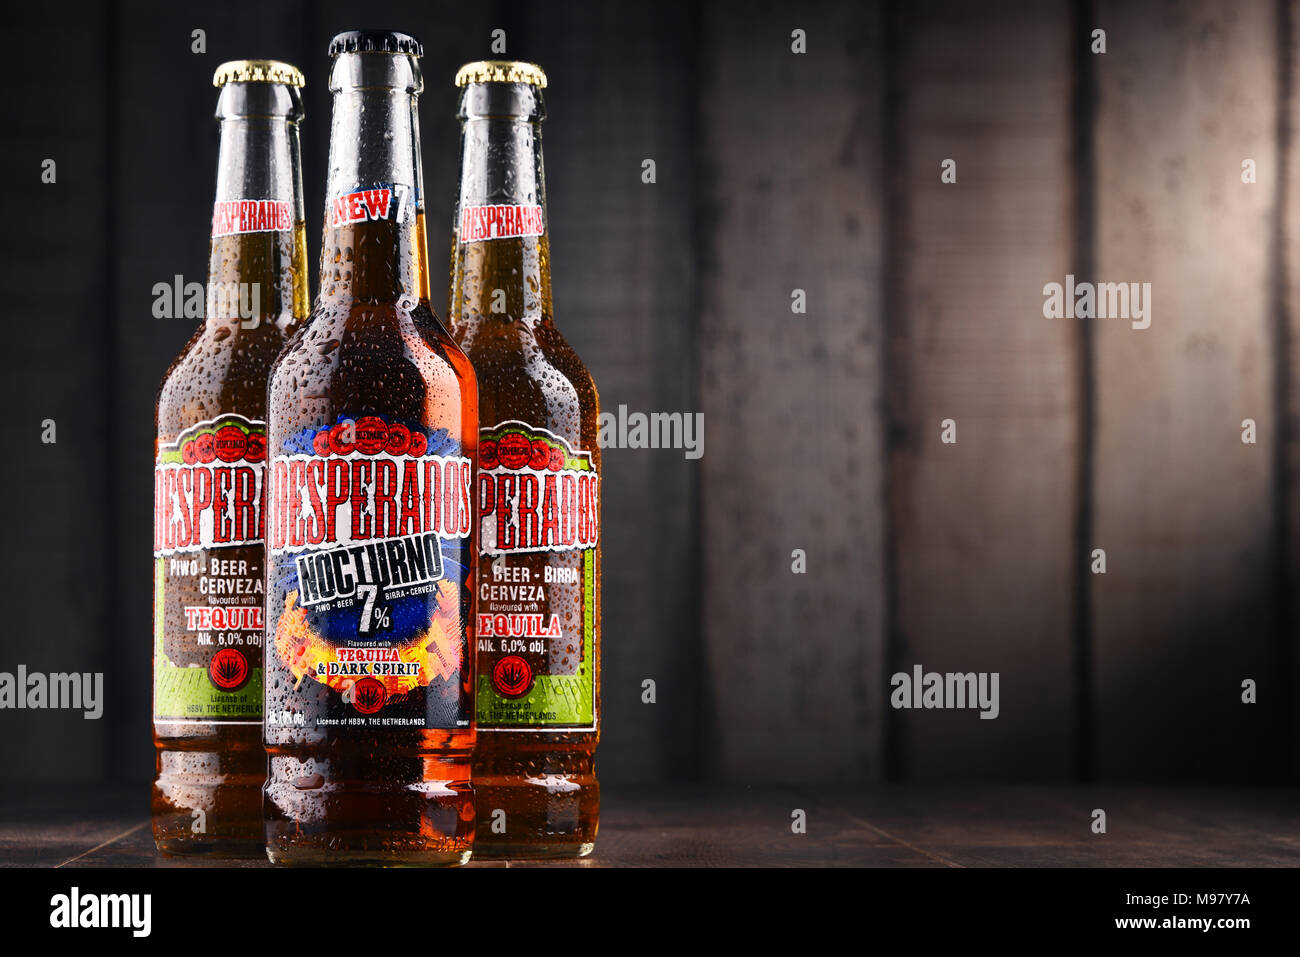 Poznan Poland Feb 14 2018 Desperados A Pale Lager Flavored With Tequila Is A Popular Beer Produced By Heineken And Sold In Over 50 Countries Stock Photo Alamy